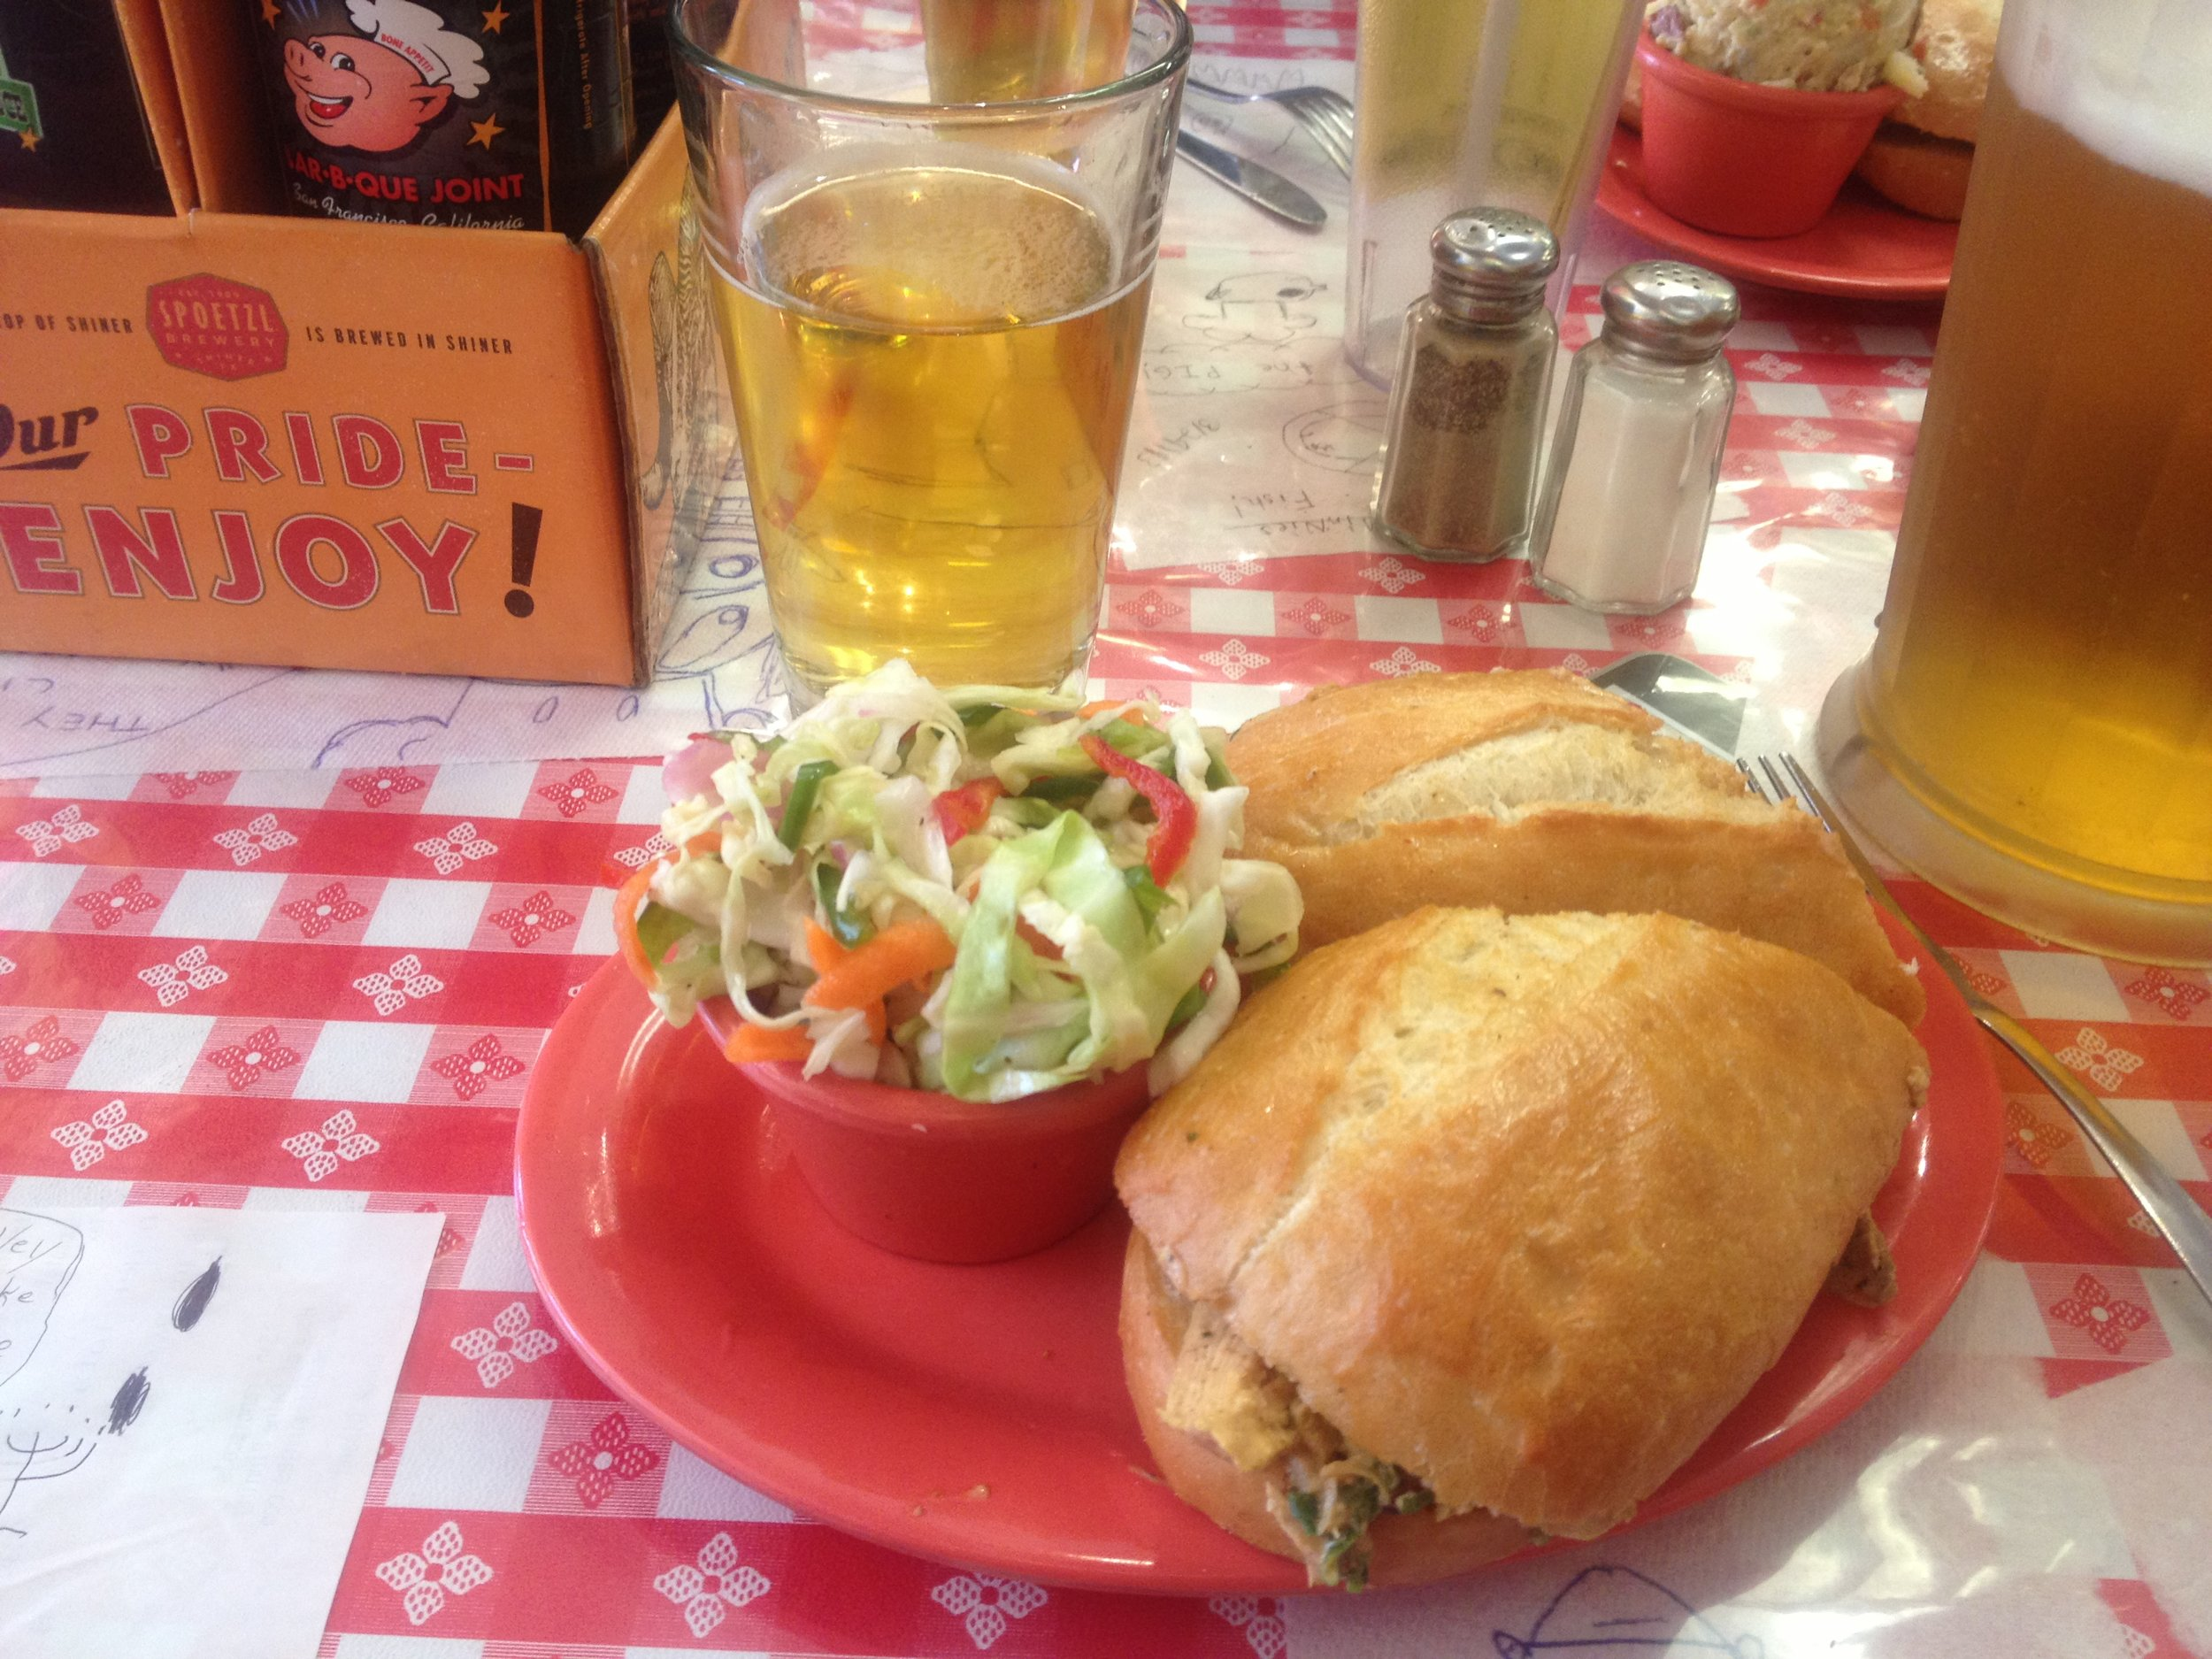 Working up an appetite, I headed for some serious BBQ at Memphis Minnie's,